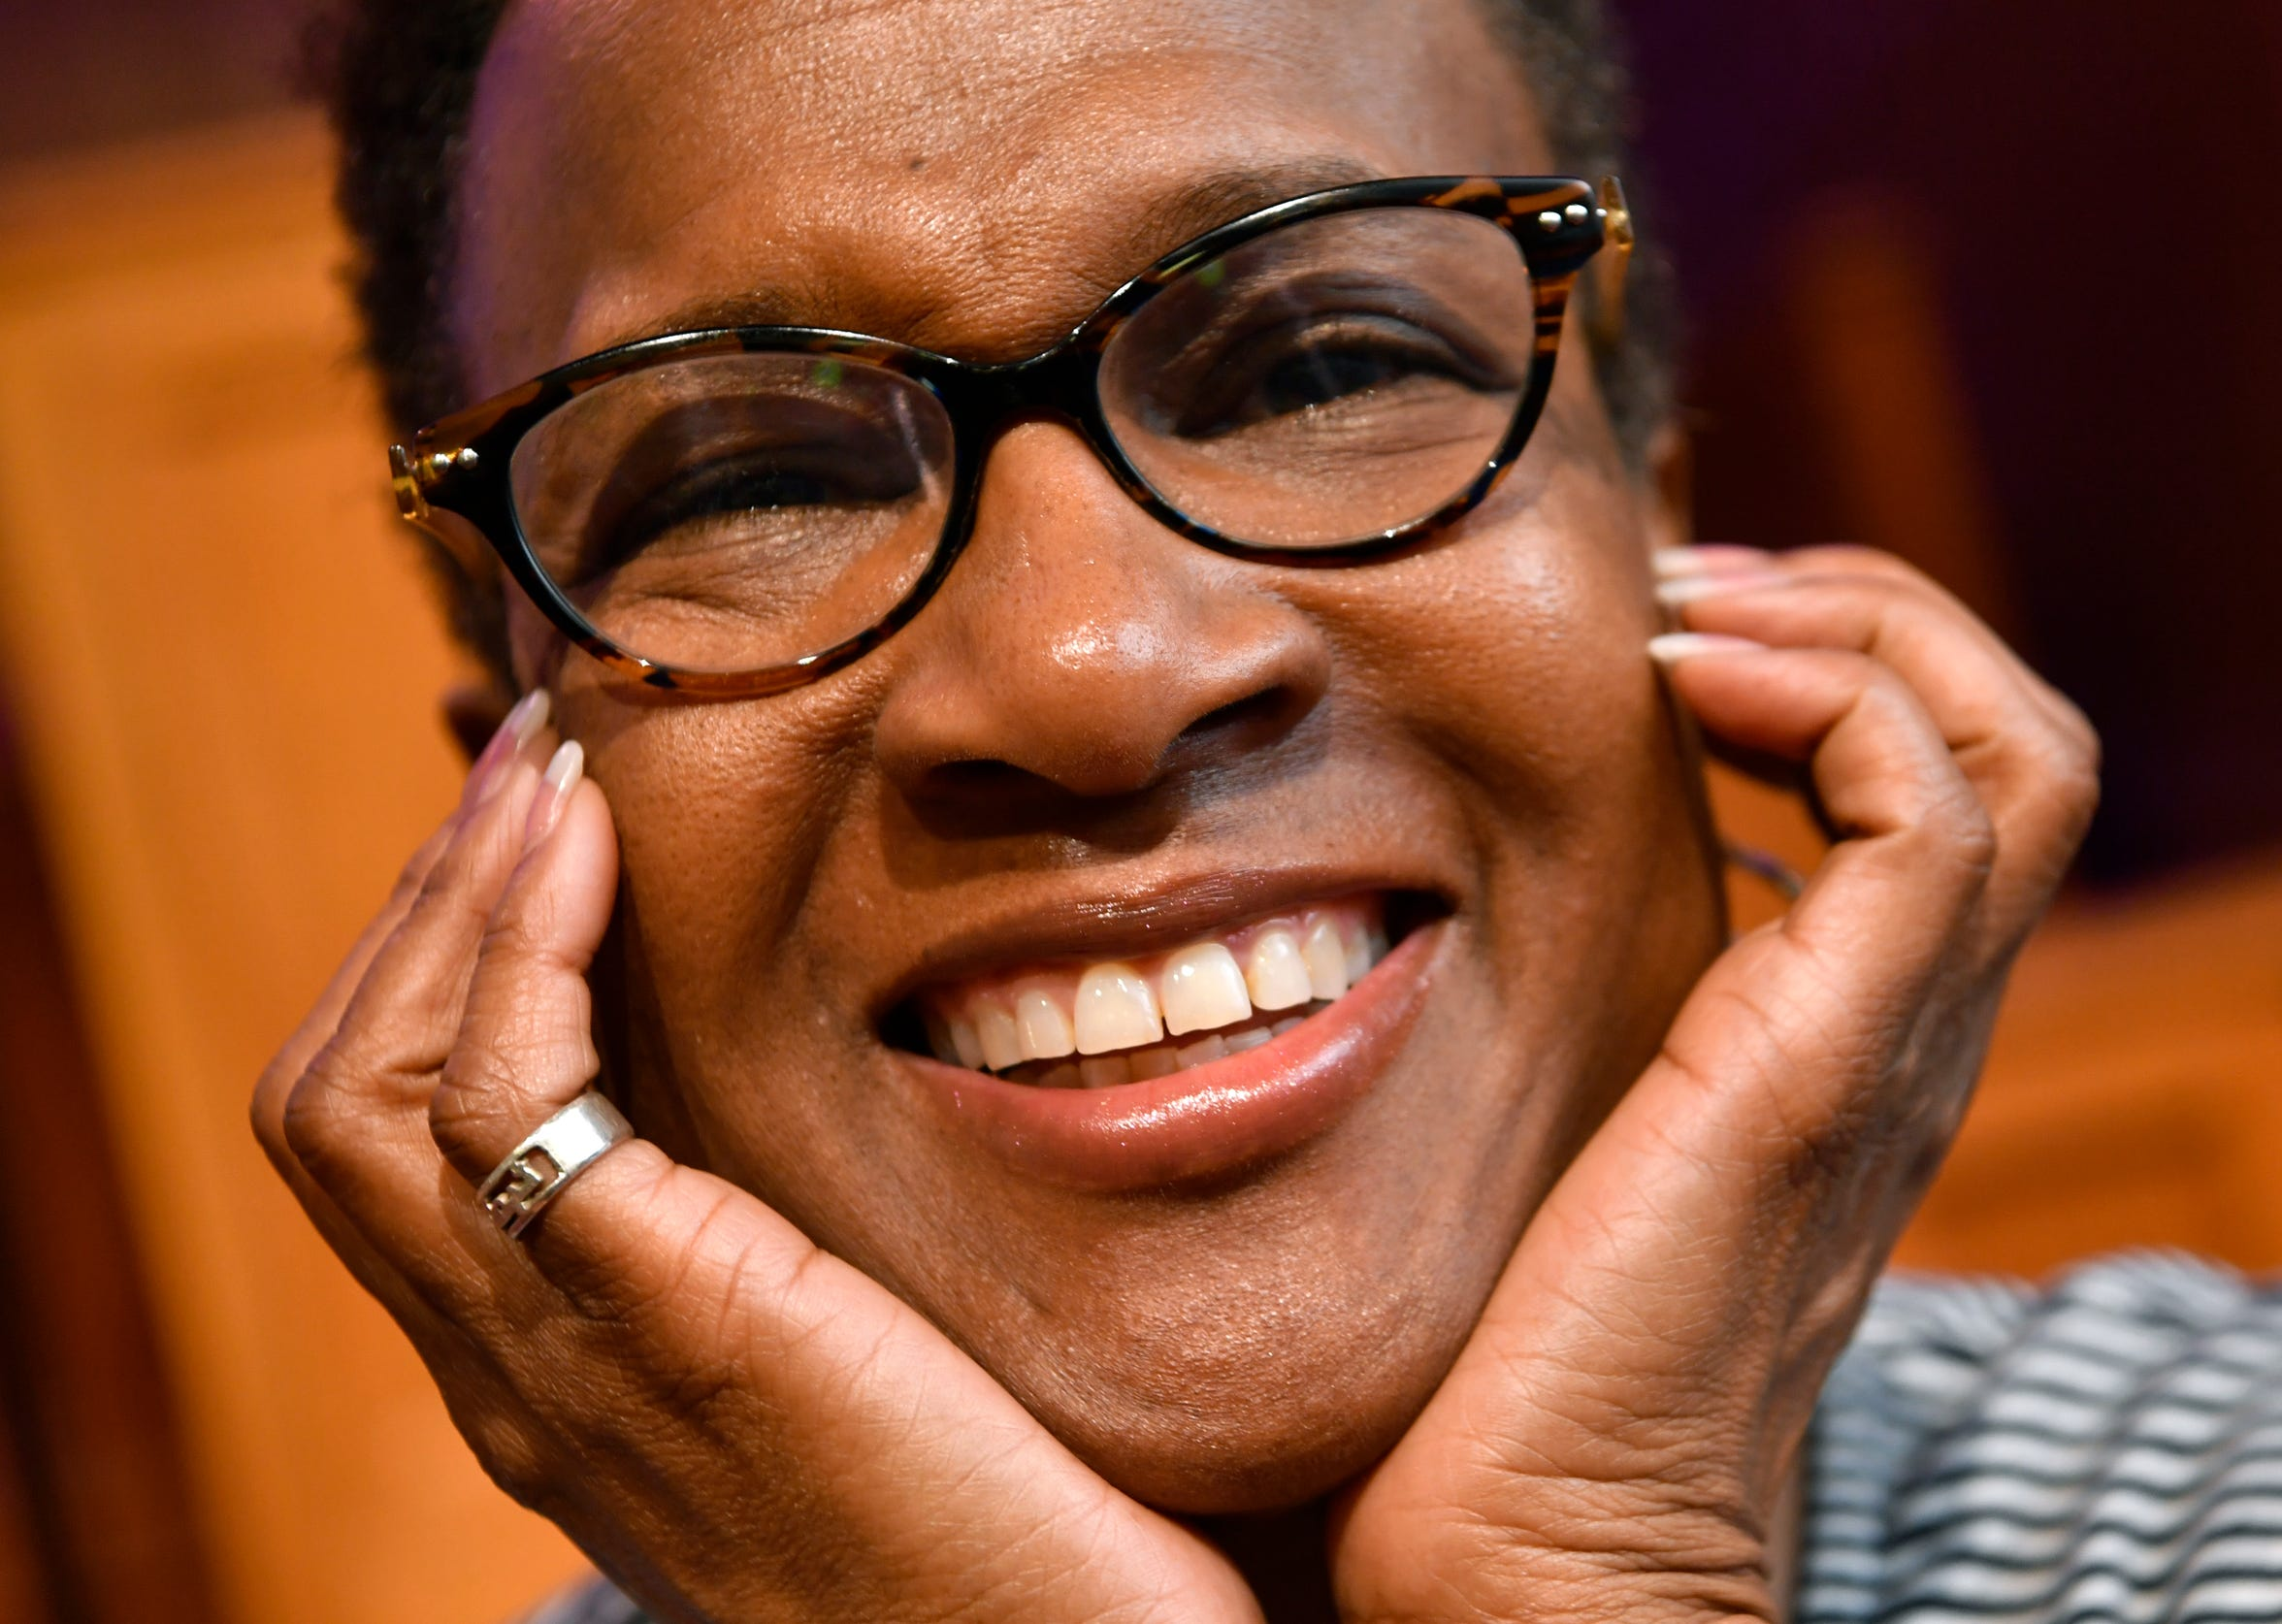 Felicia Hopkins is known for her smile and upbeat ministry.